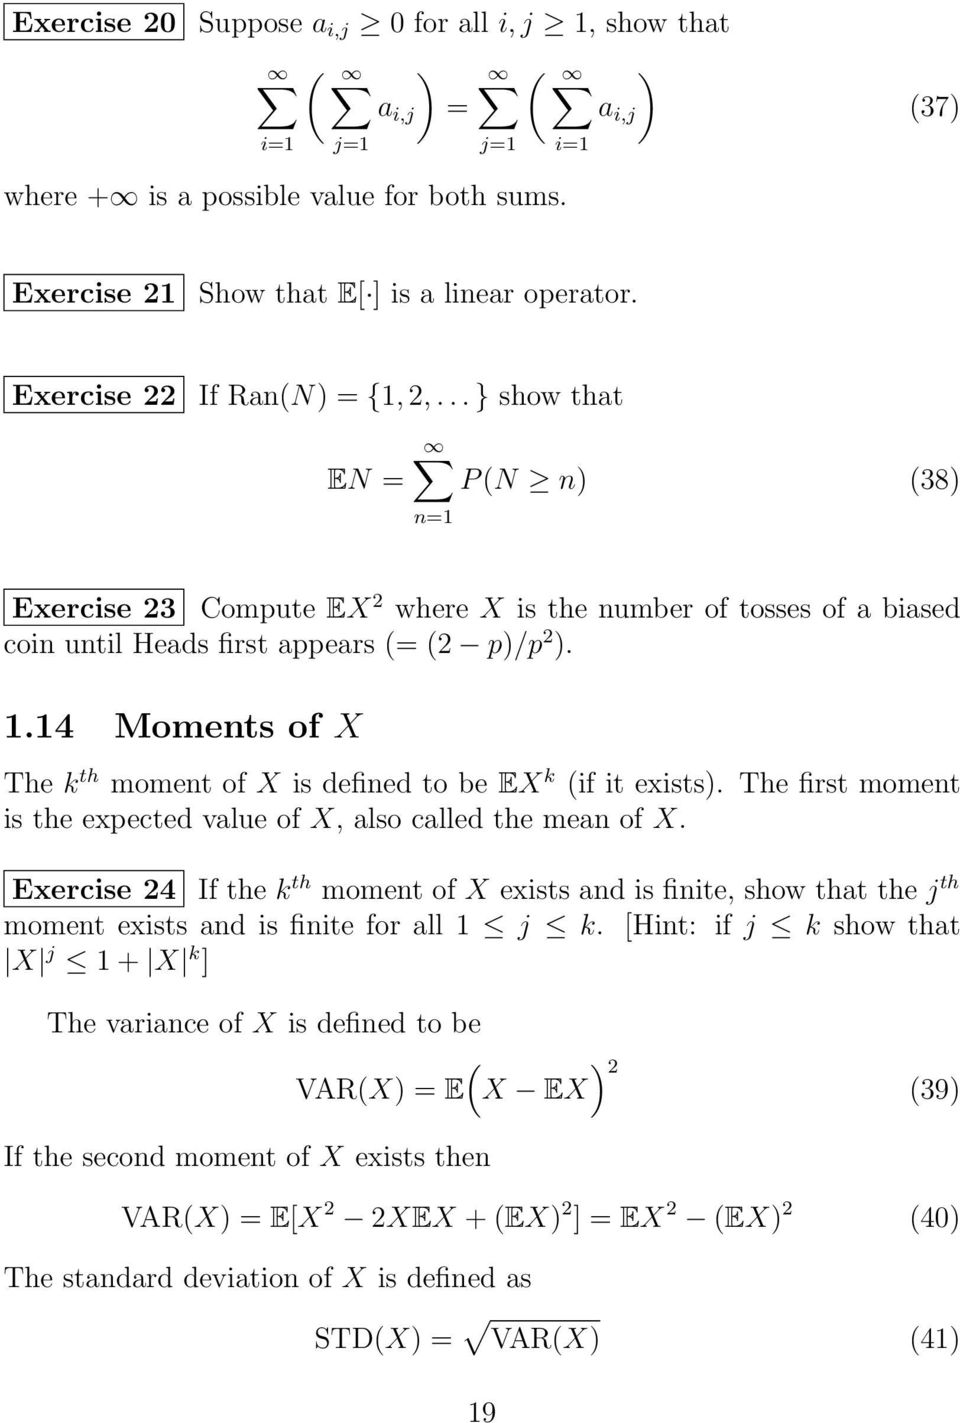 14 Moments of X The k th moment of X is defined to be EX k (if it exists). The first moment is the expected value of X, also called the mean of X.